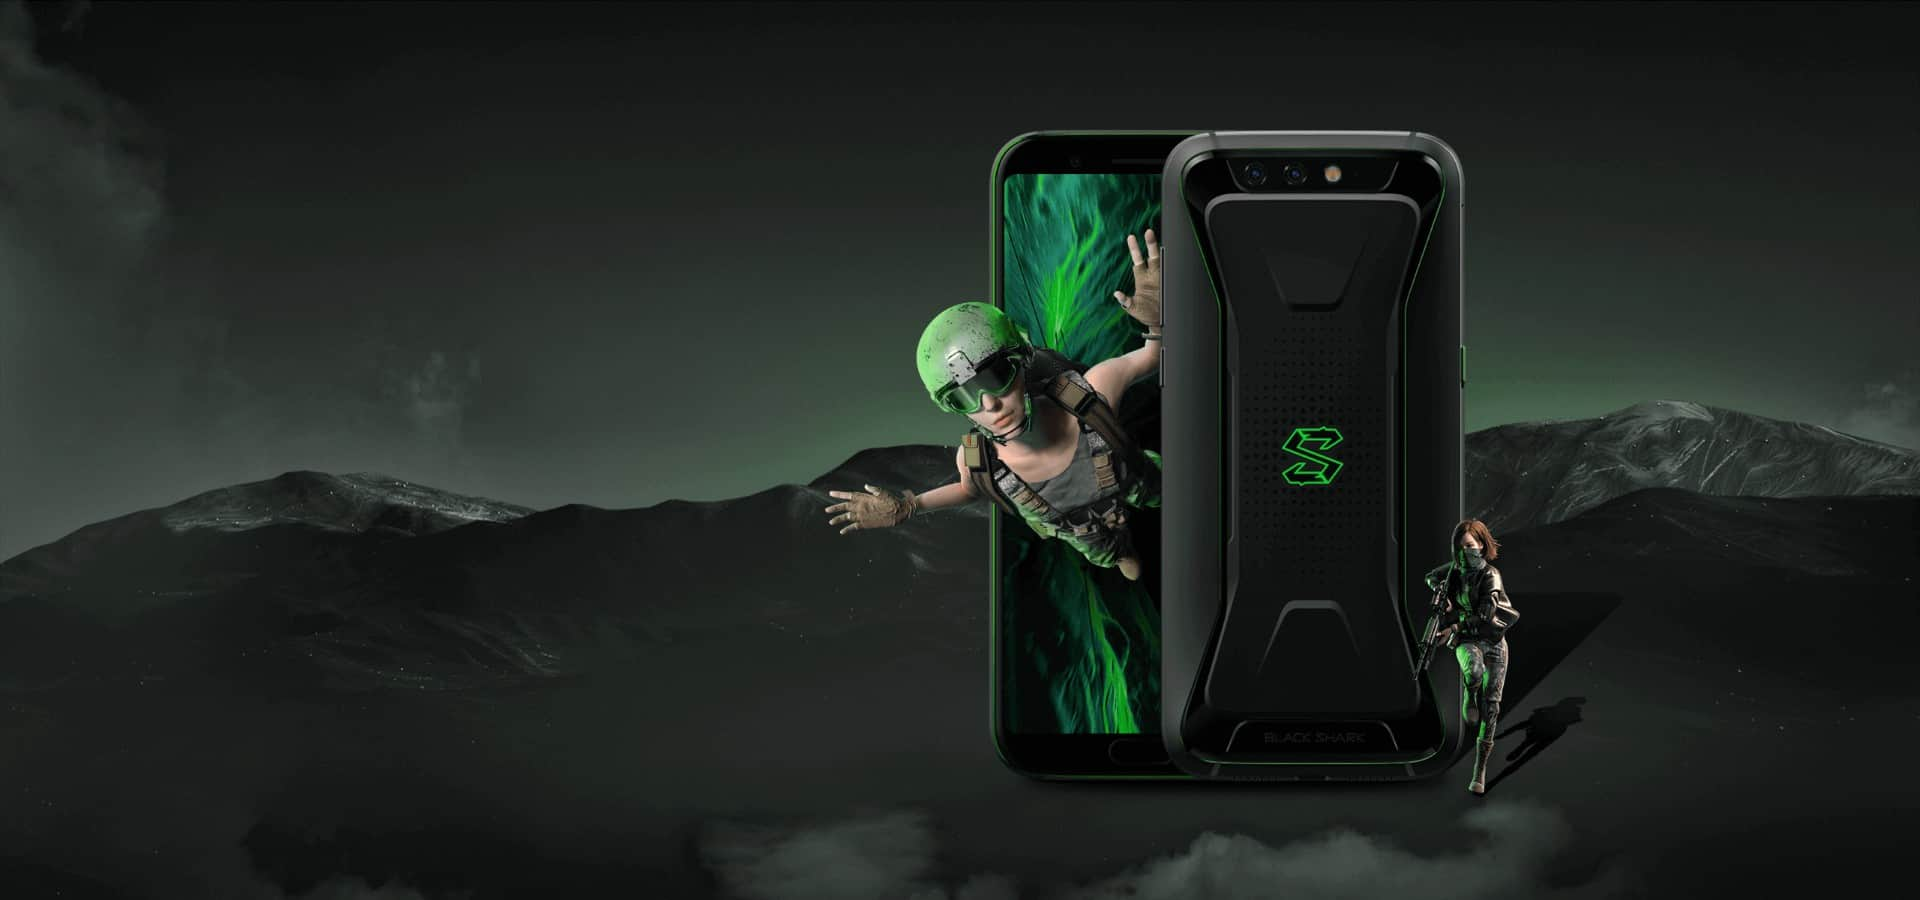 Black Shark Gaming smartphone official image 2